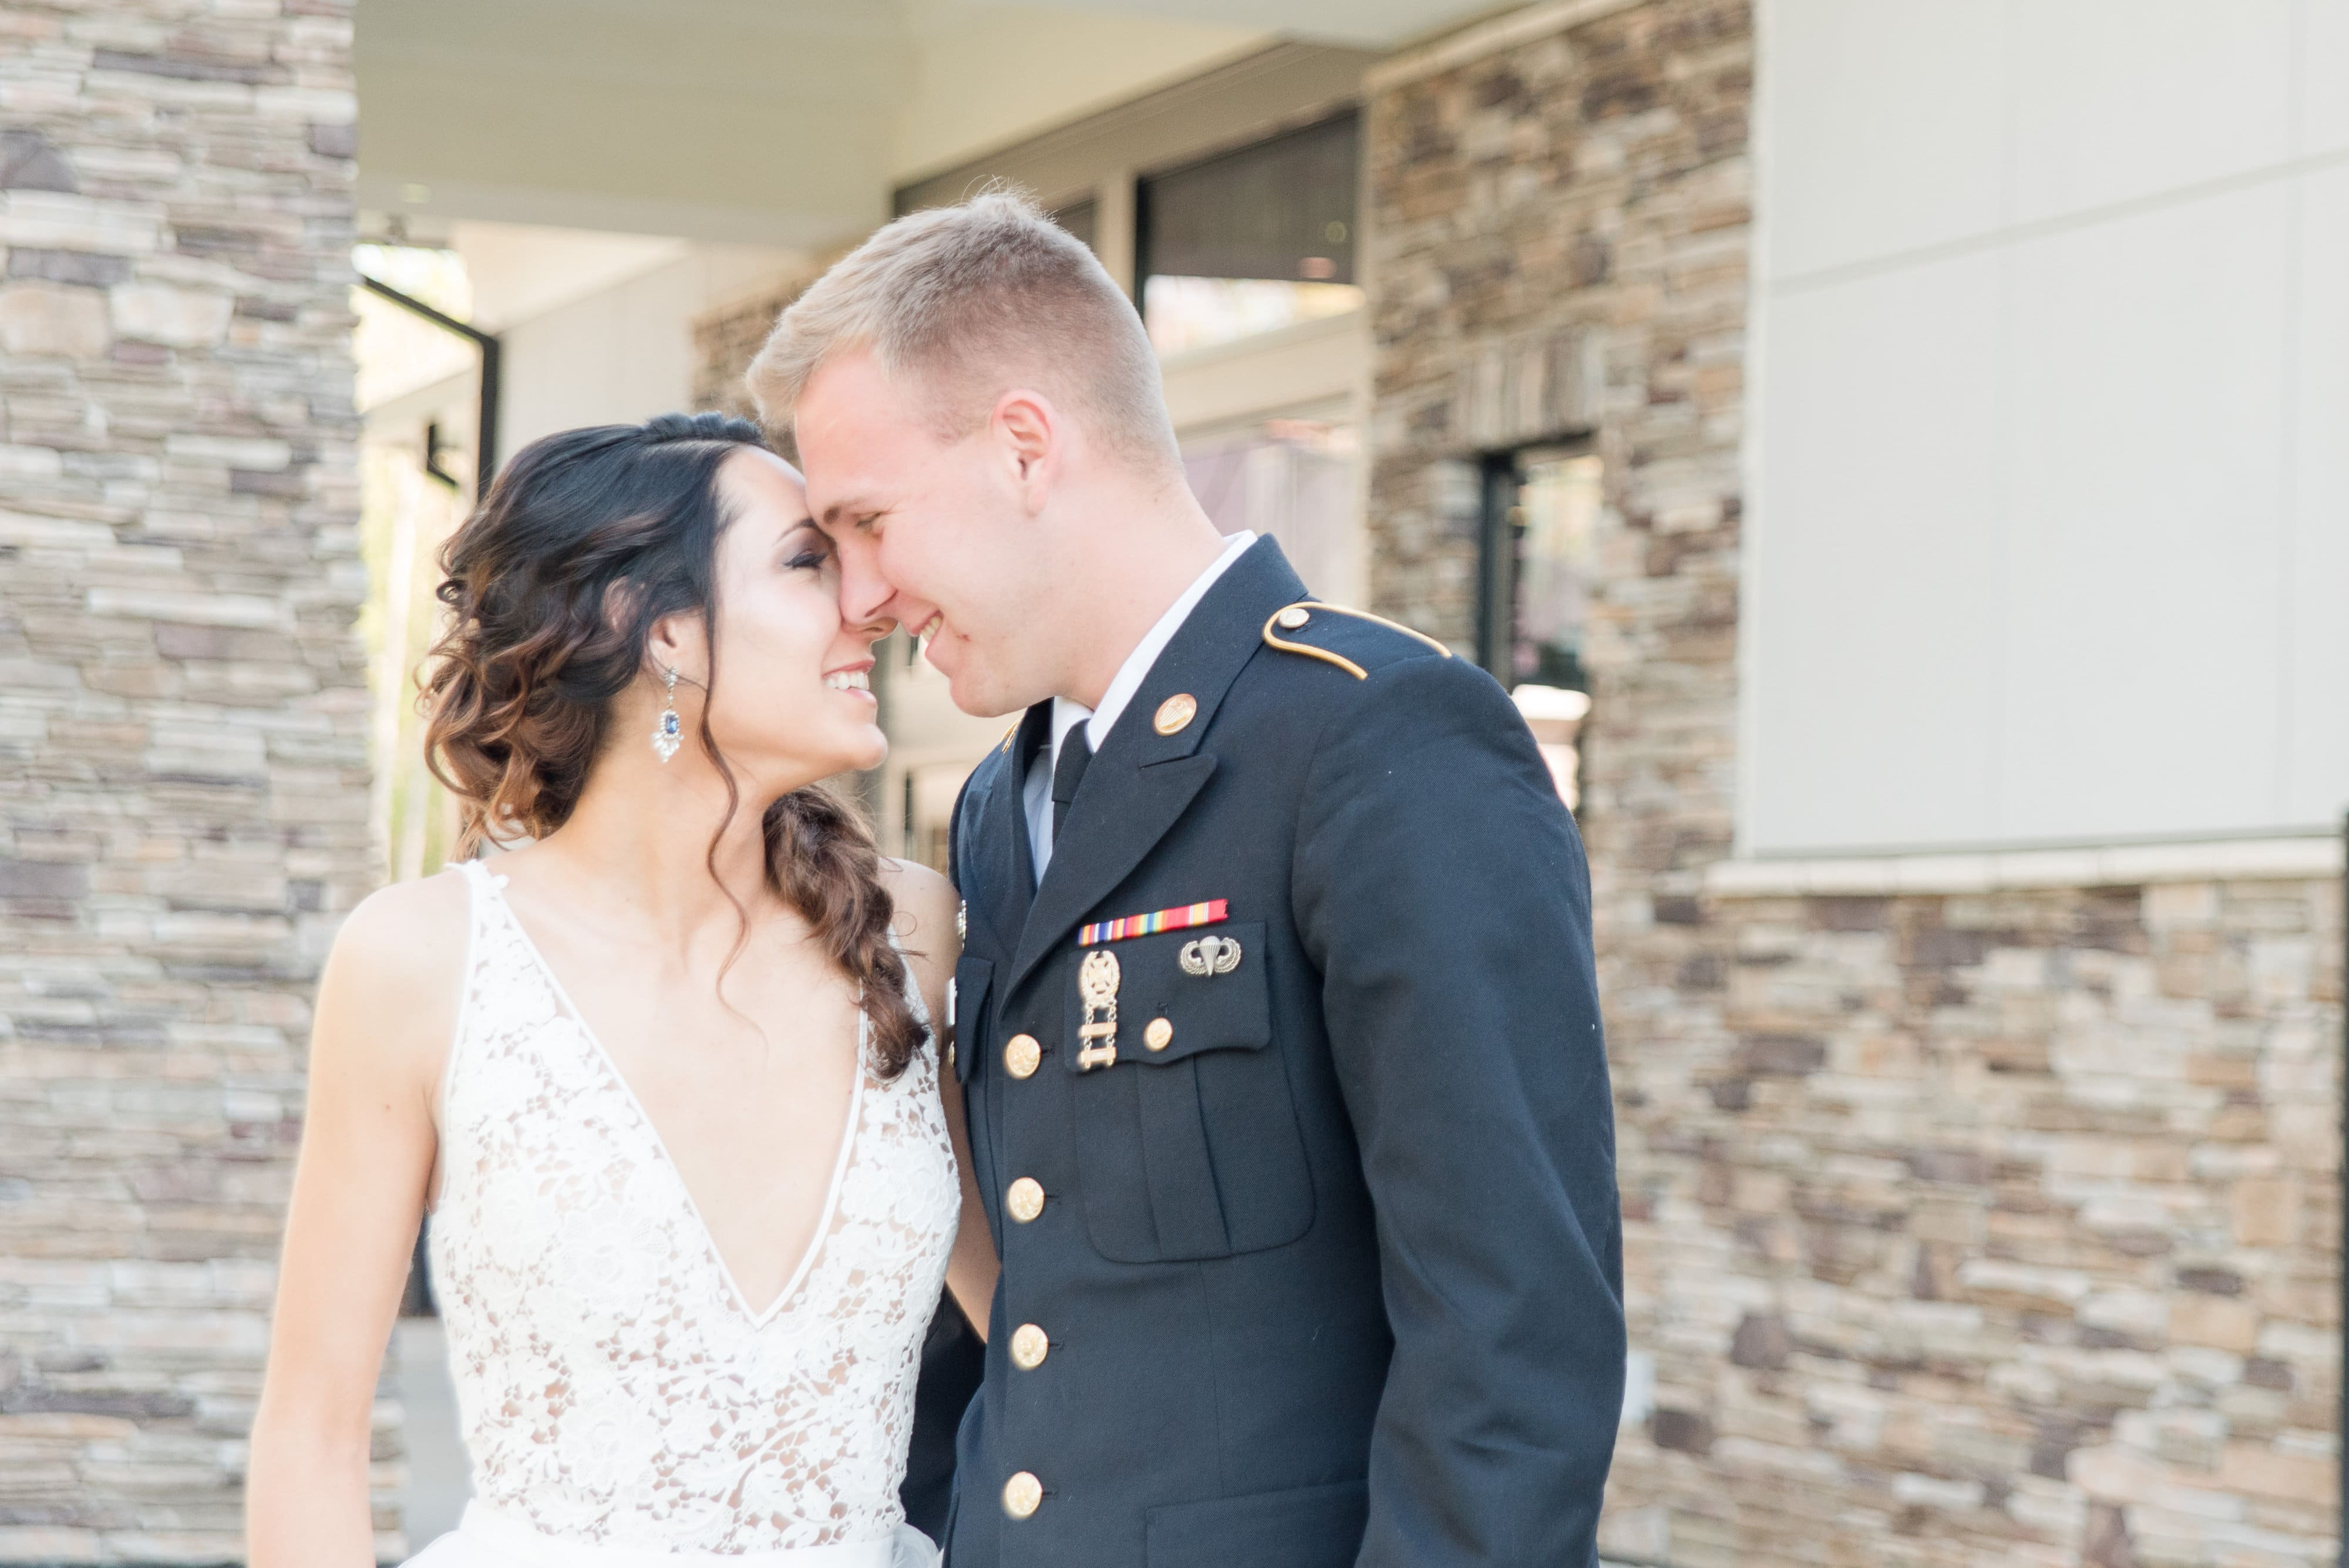 Bride wearing a dress by J Majors embraces groom in image captured by Charlotte Wedding Collective